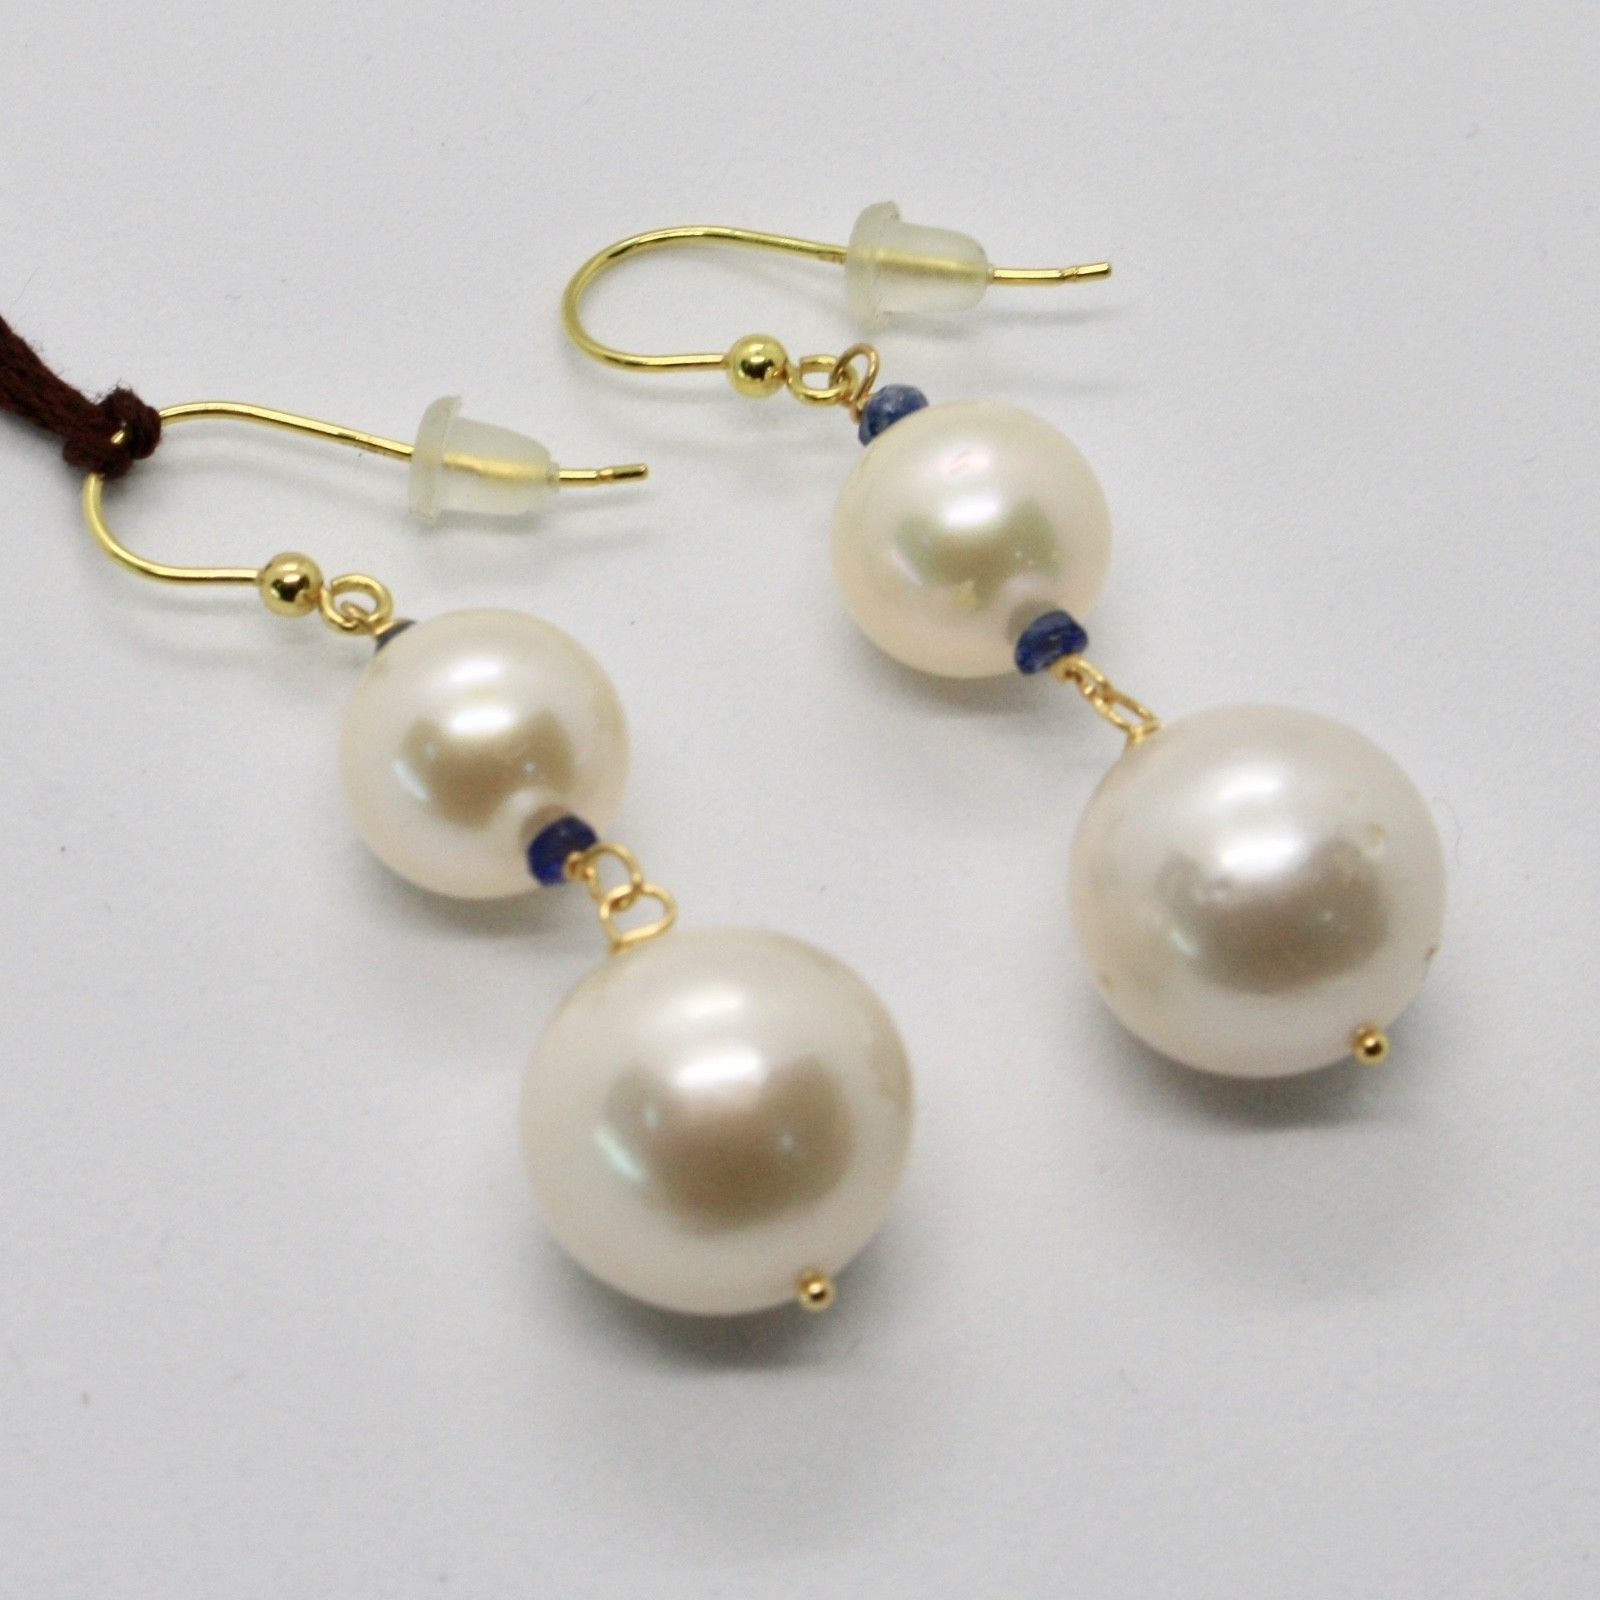 SOLID 18K YELLOW GOLD EARRINGS WITH WHITE FW PEARL AND SAPPHIRE MADE IN ITALY